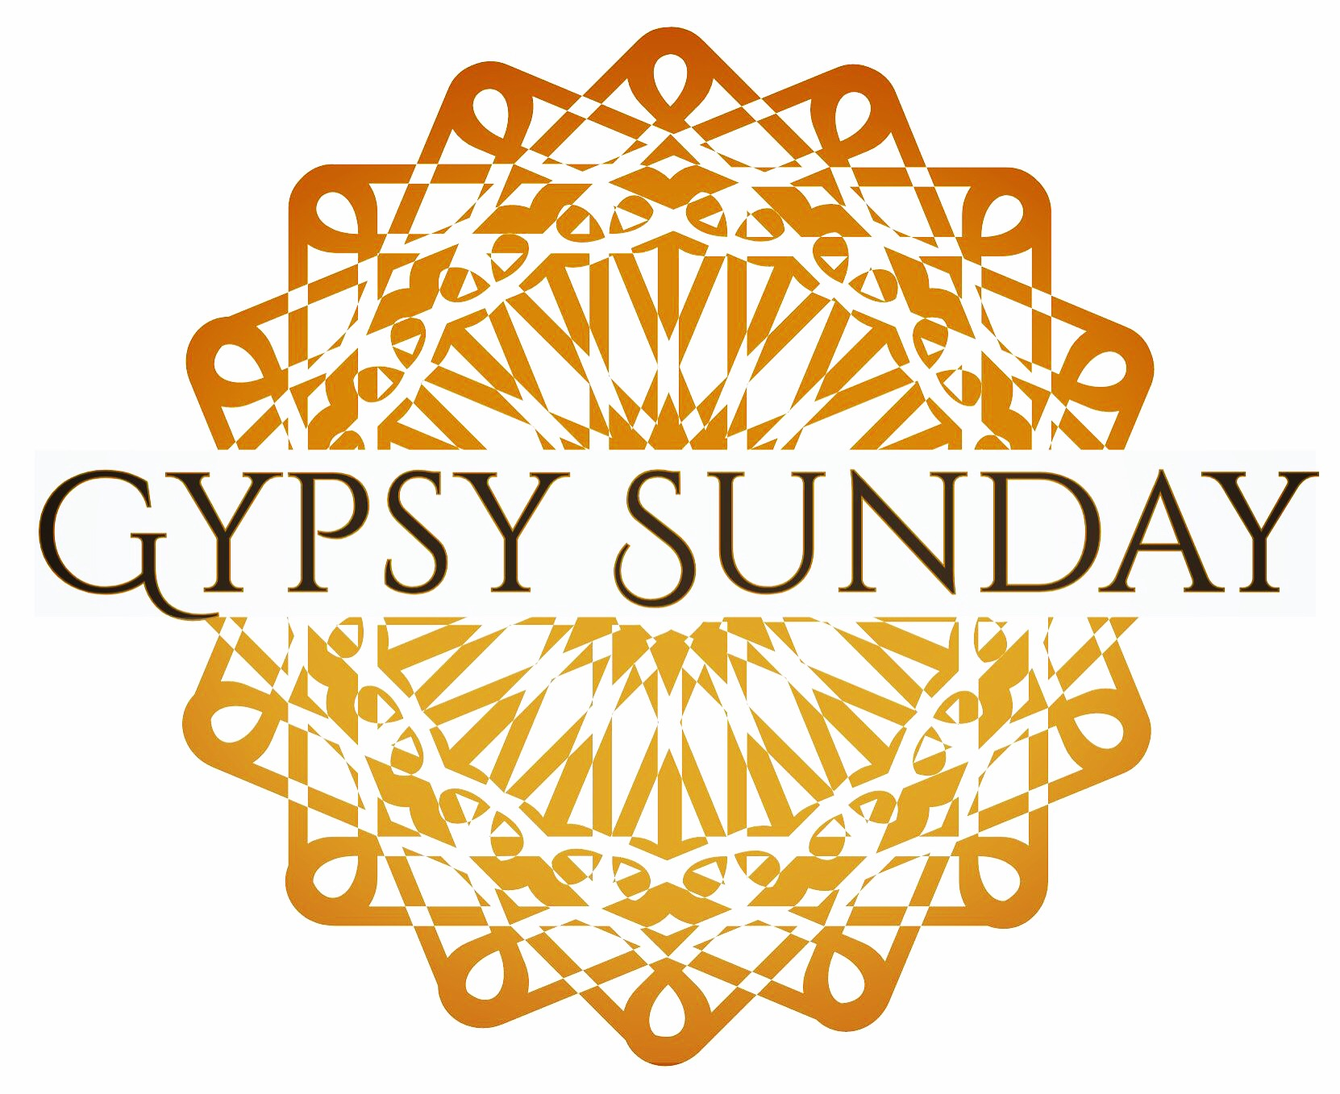 Gypsy Sunday